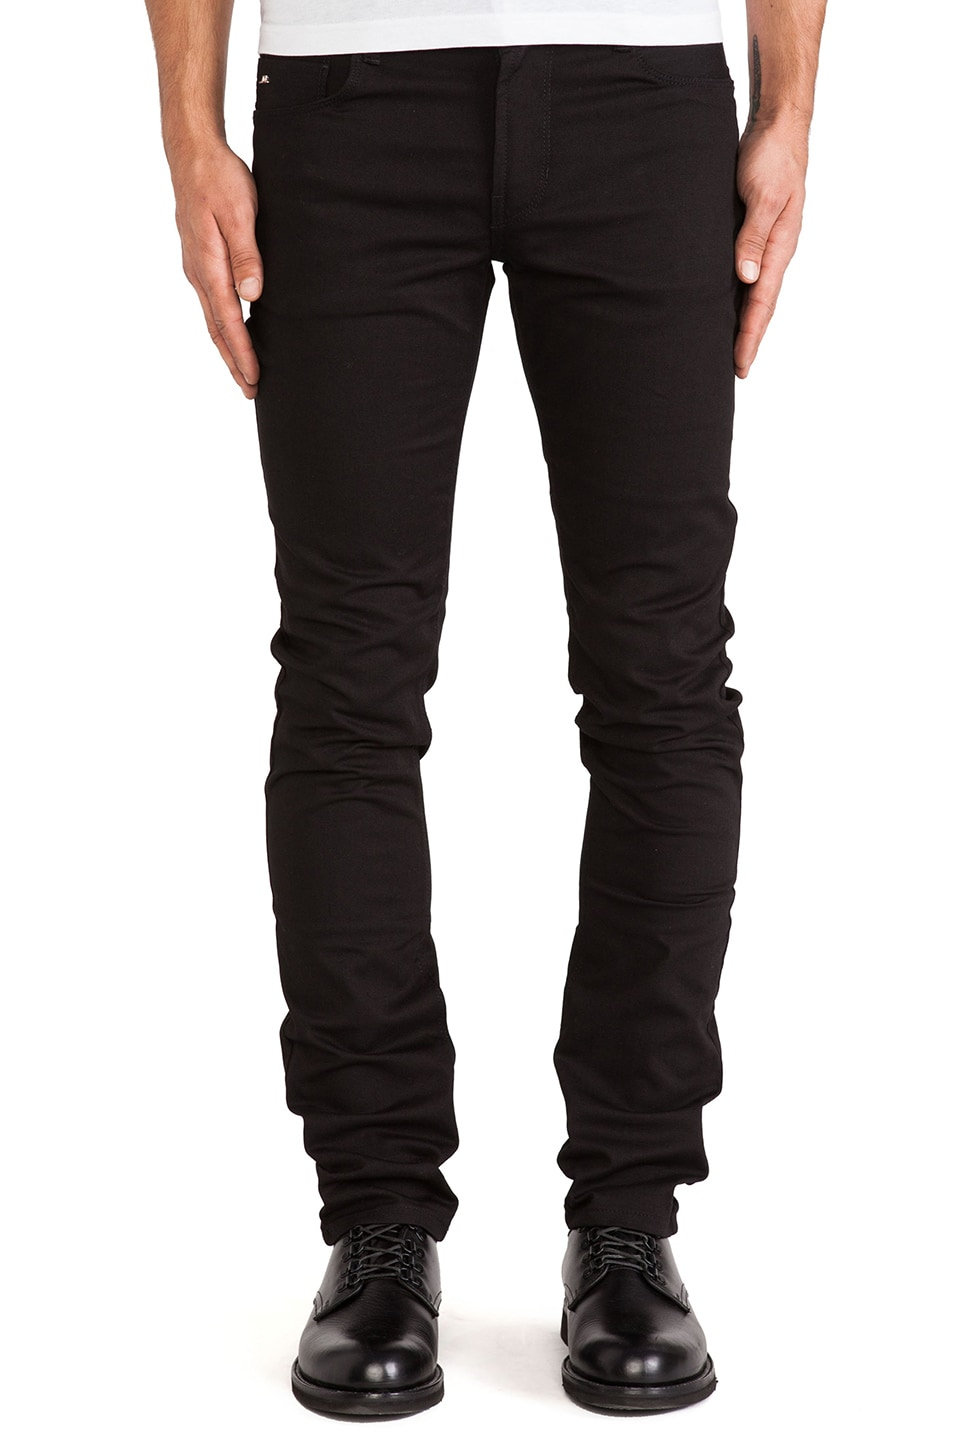 J. Lindeberg Damien Black Stretch Denim in Black